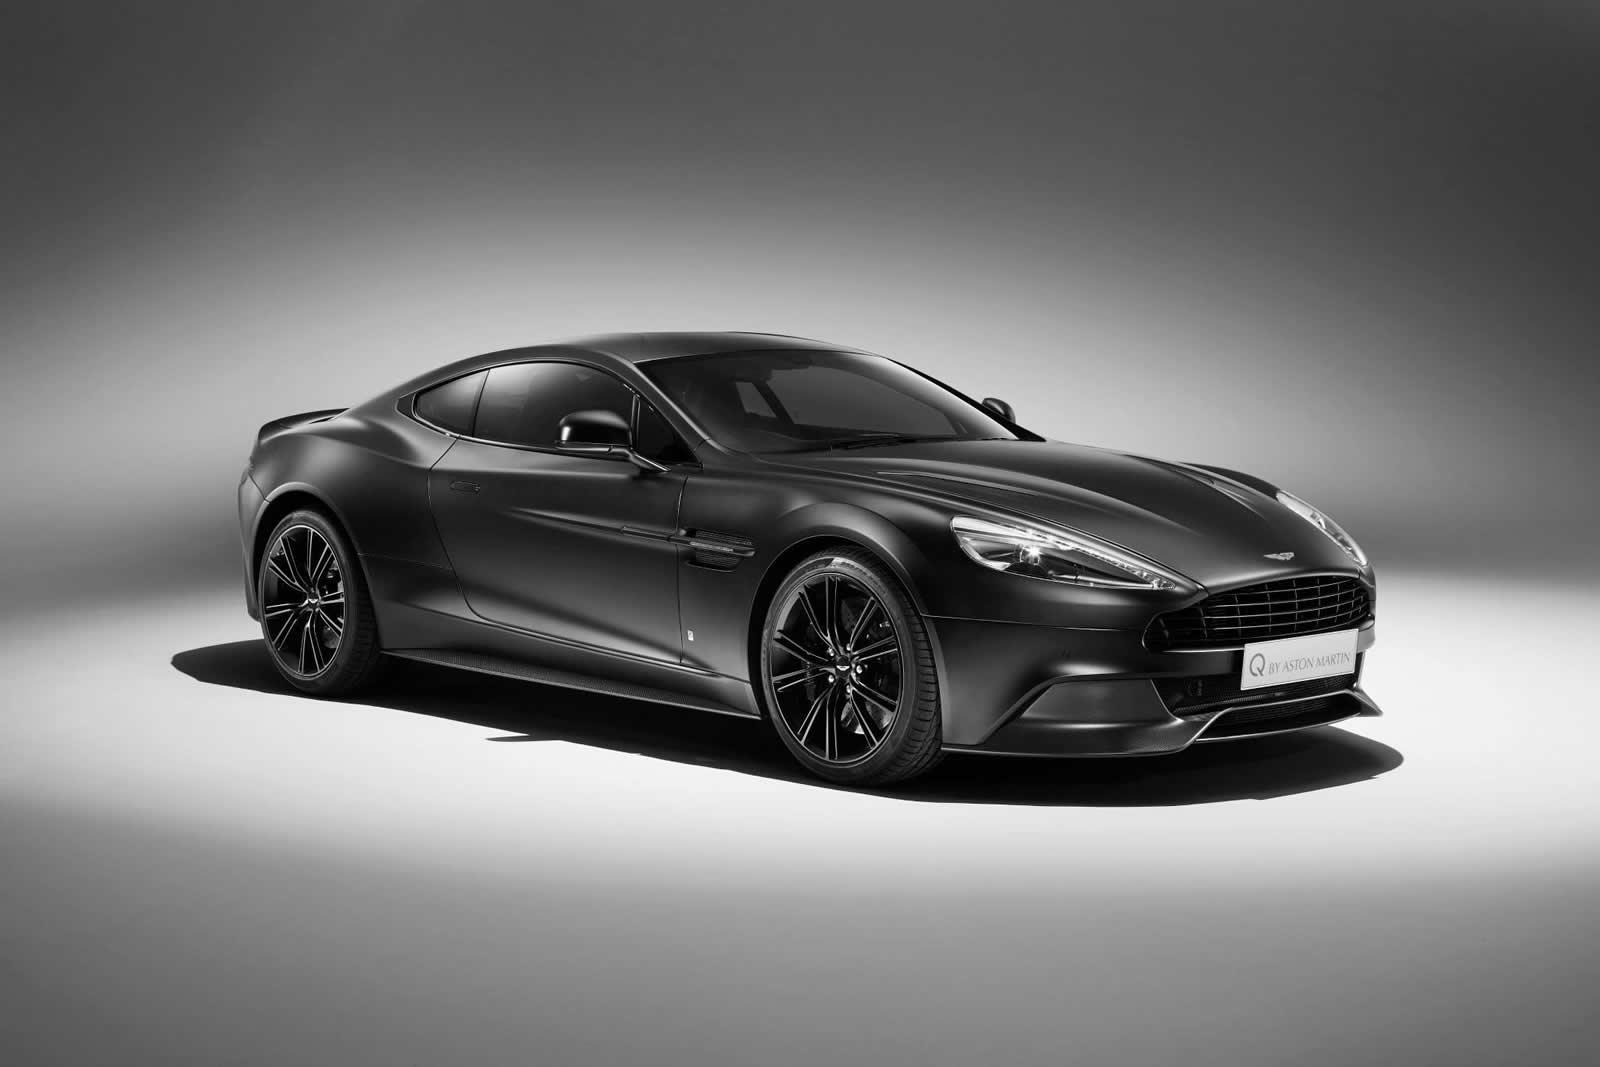 2015 Aston Martin Vanquish Carbon Black Hd Wallpapers Download 1600x1067